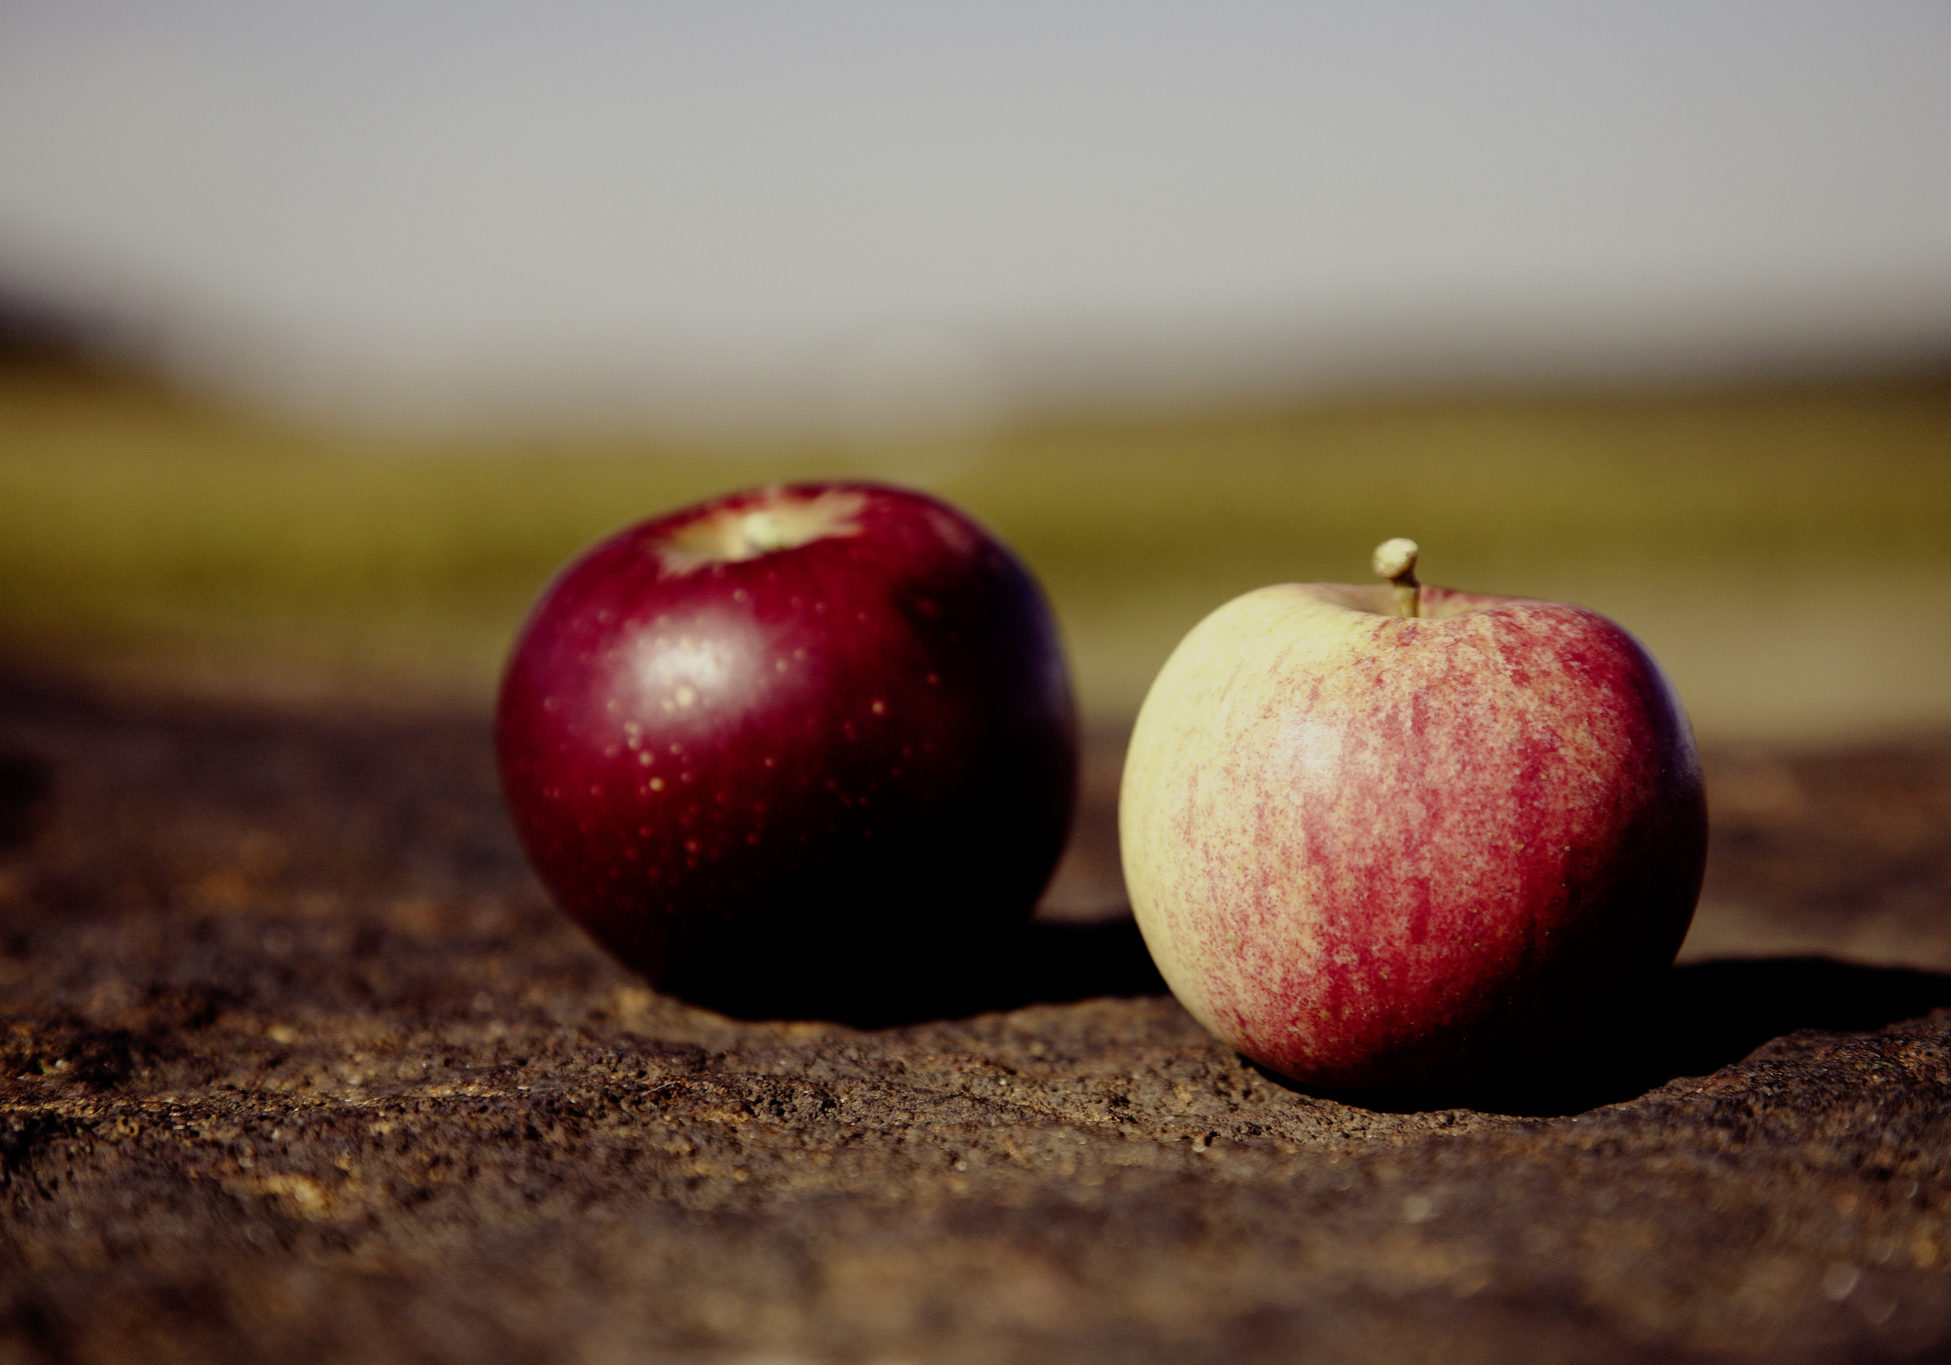 two apples sitting on the dark earth. the one on the left is dark red, like blood, and the one on the right is green and red and streaked with color.